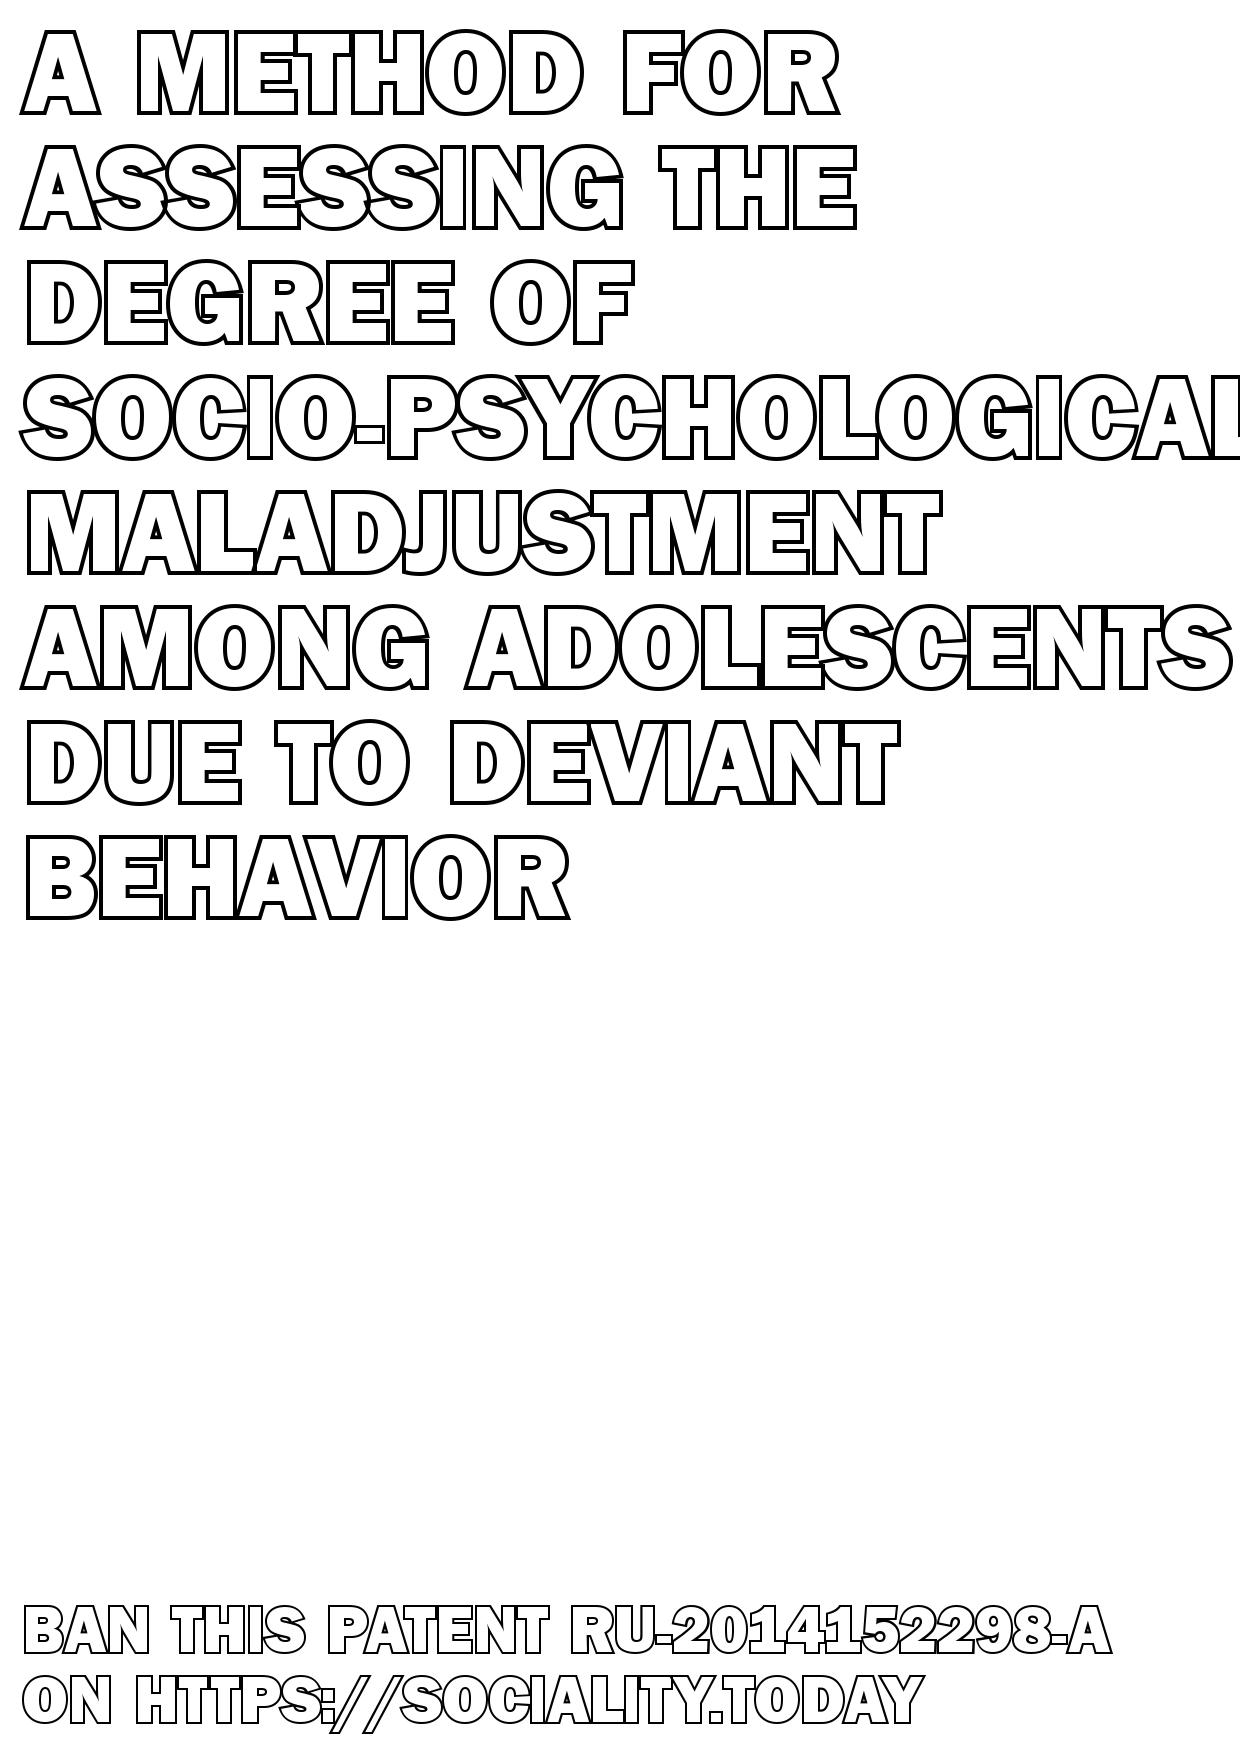 A method for assessing the degree of socio-psychological maladjustment among adolescents due to deviant behavior  - RU-2014152298-A